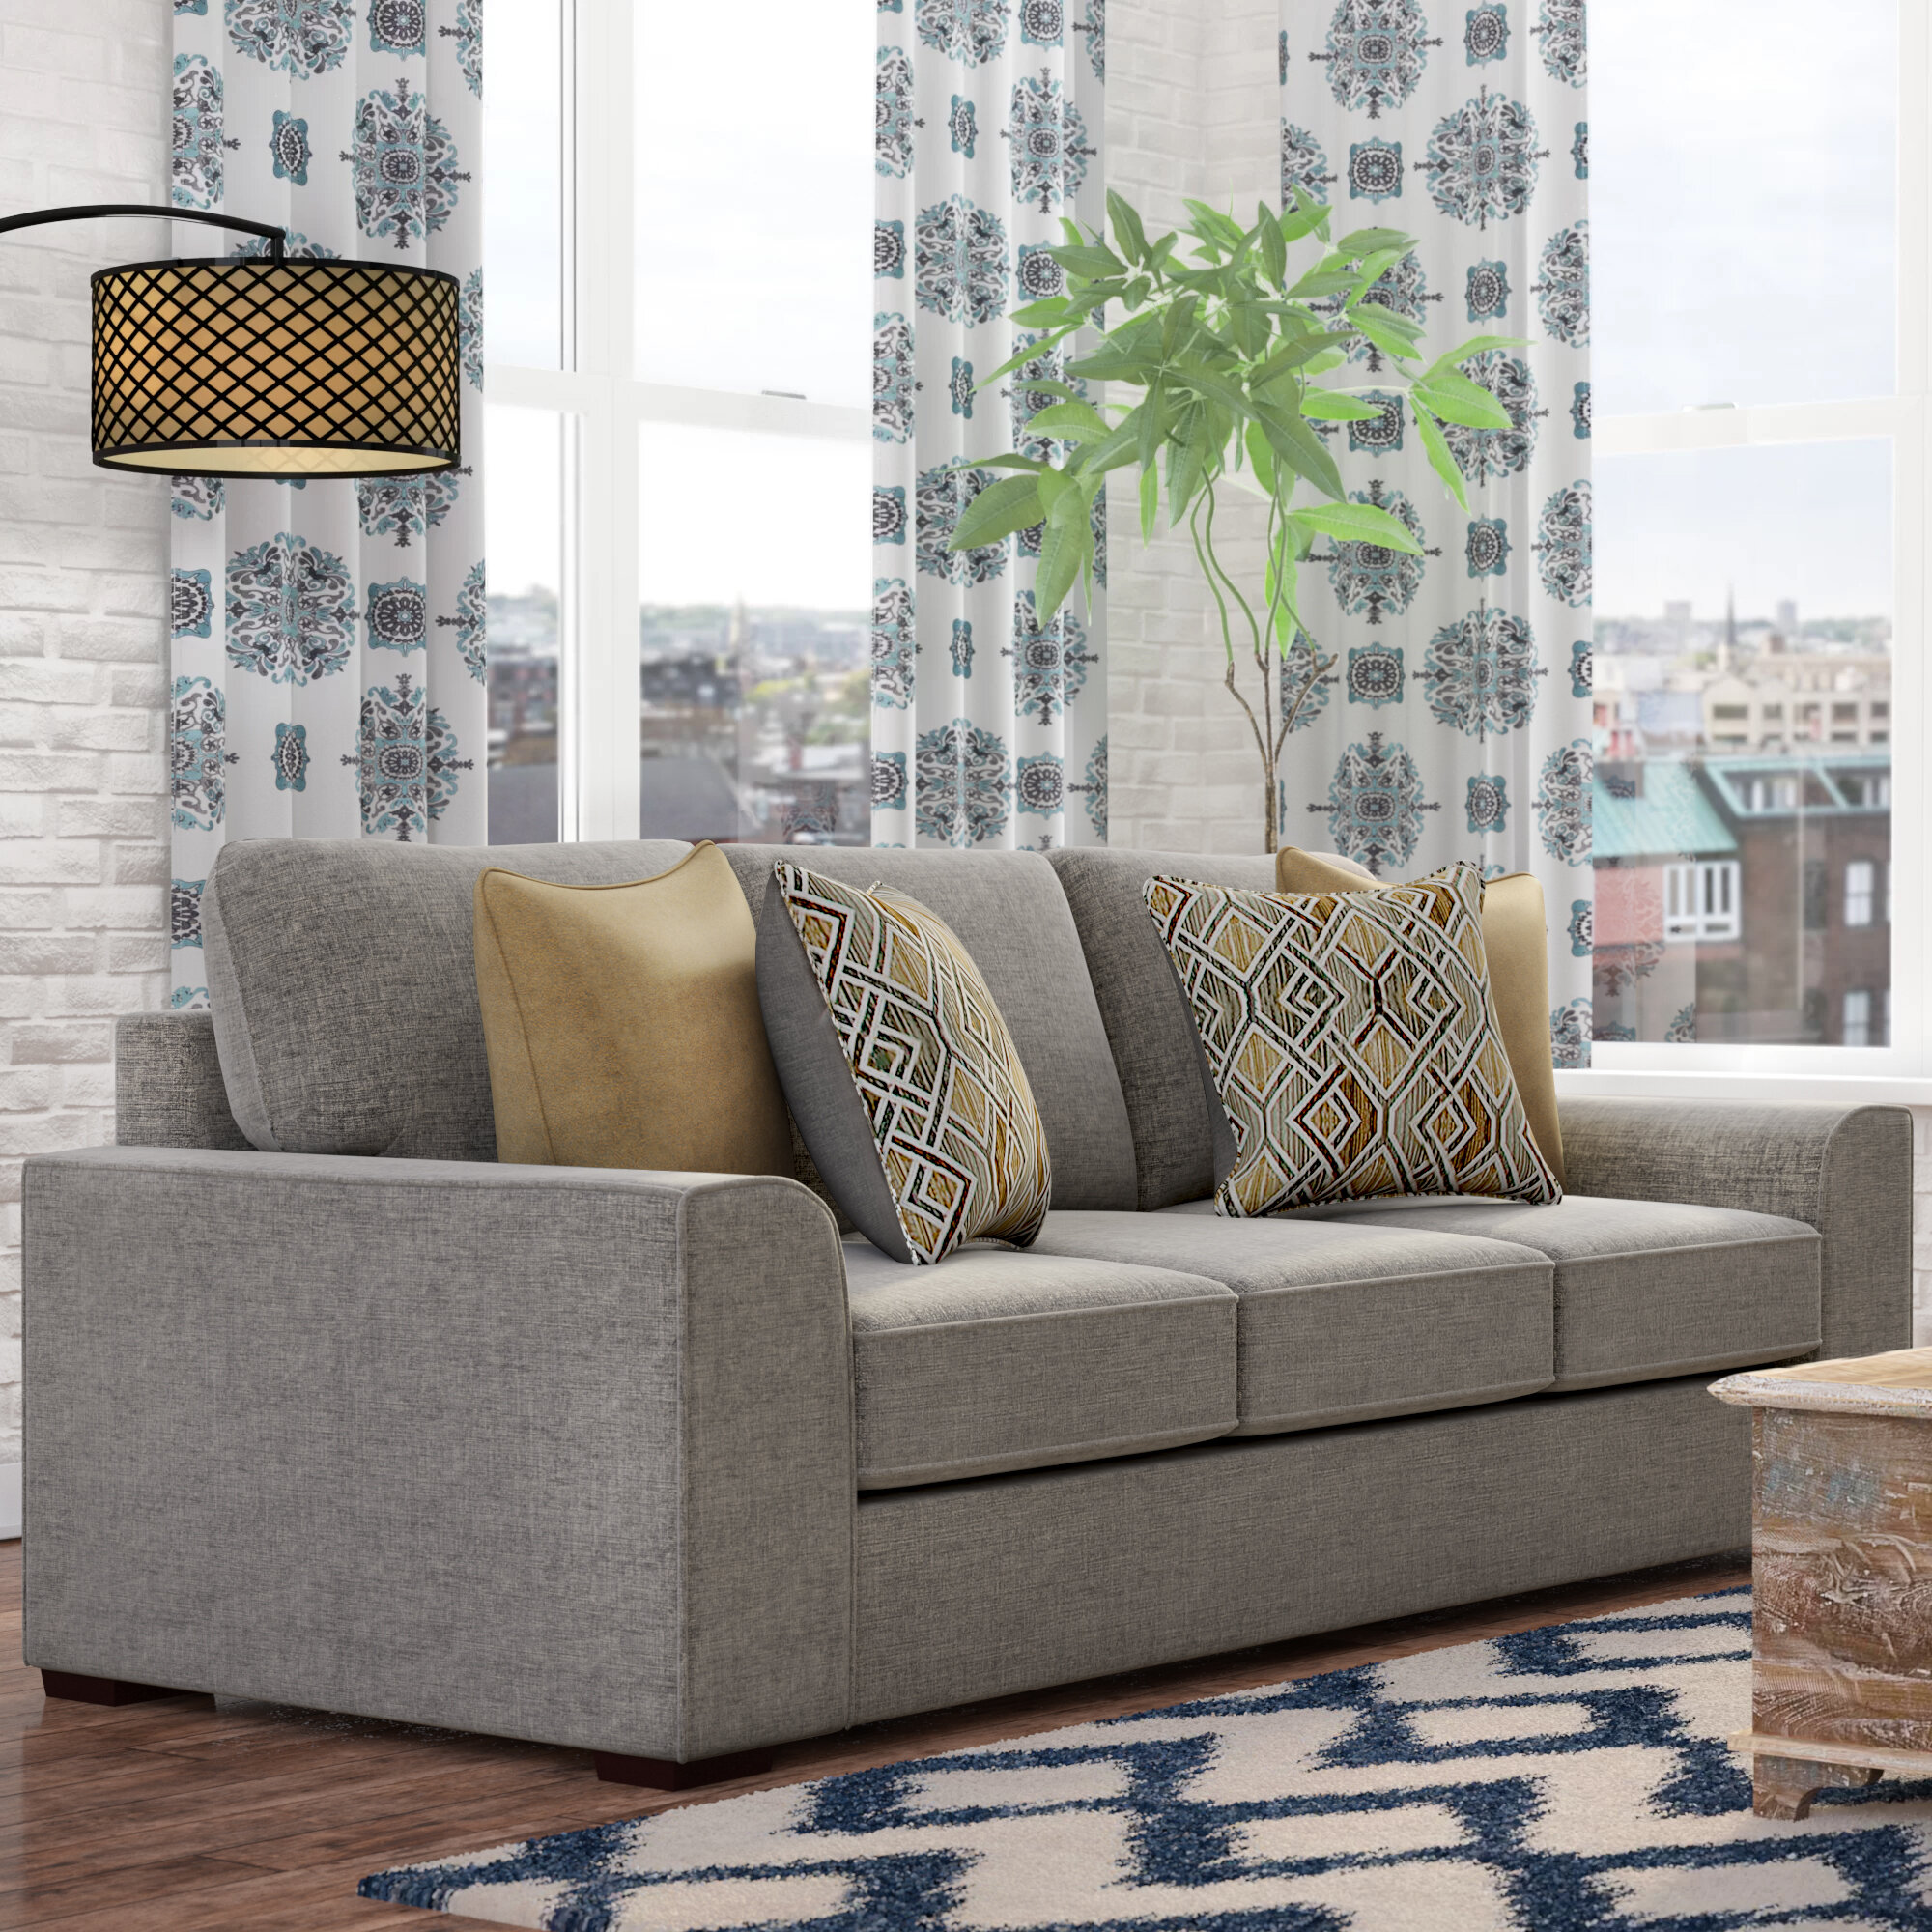 Zipcode Design Ackers Brook Sofa Reviews Wayfair